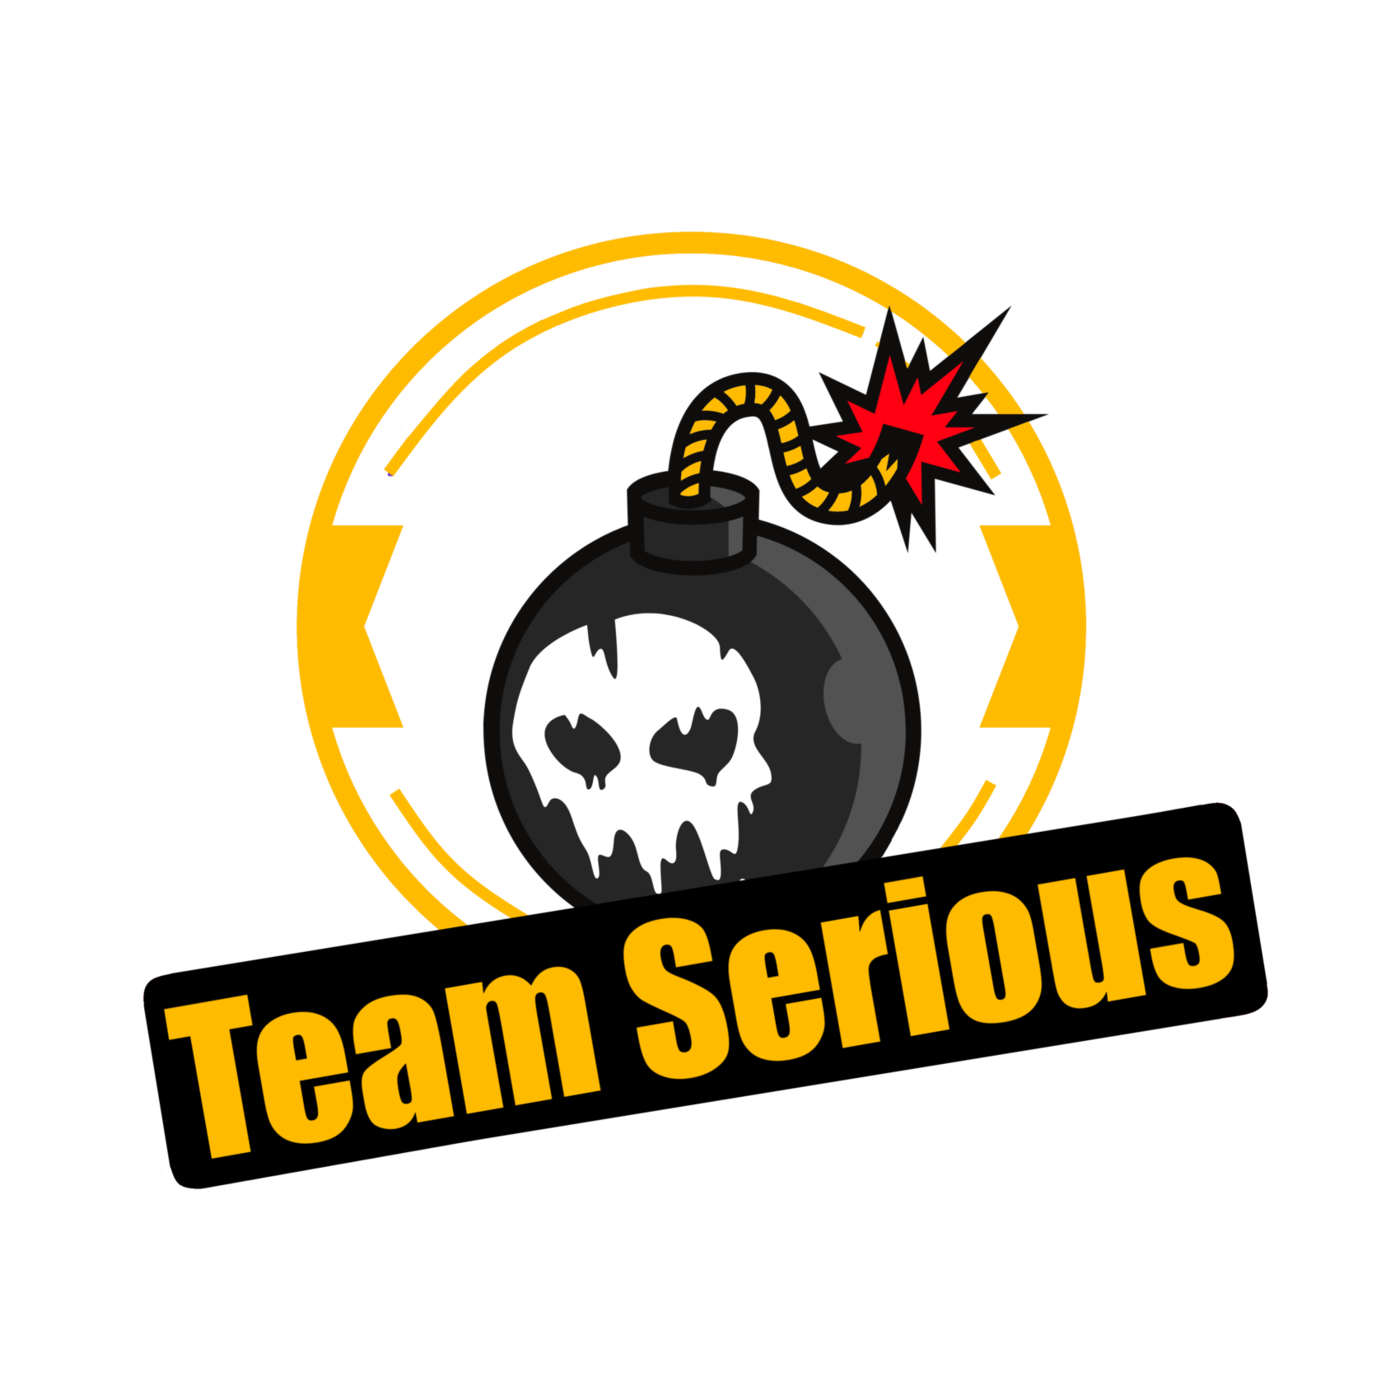 Team Serious DFW Talks - Ashes (Serious Ladies)